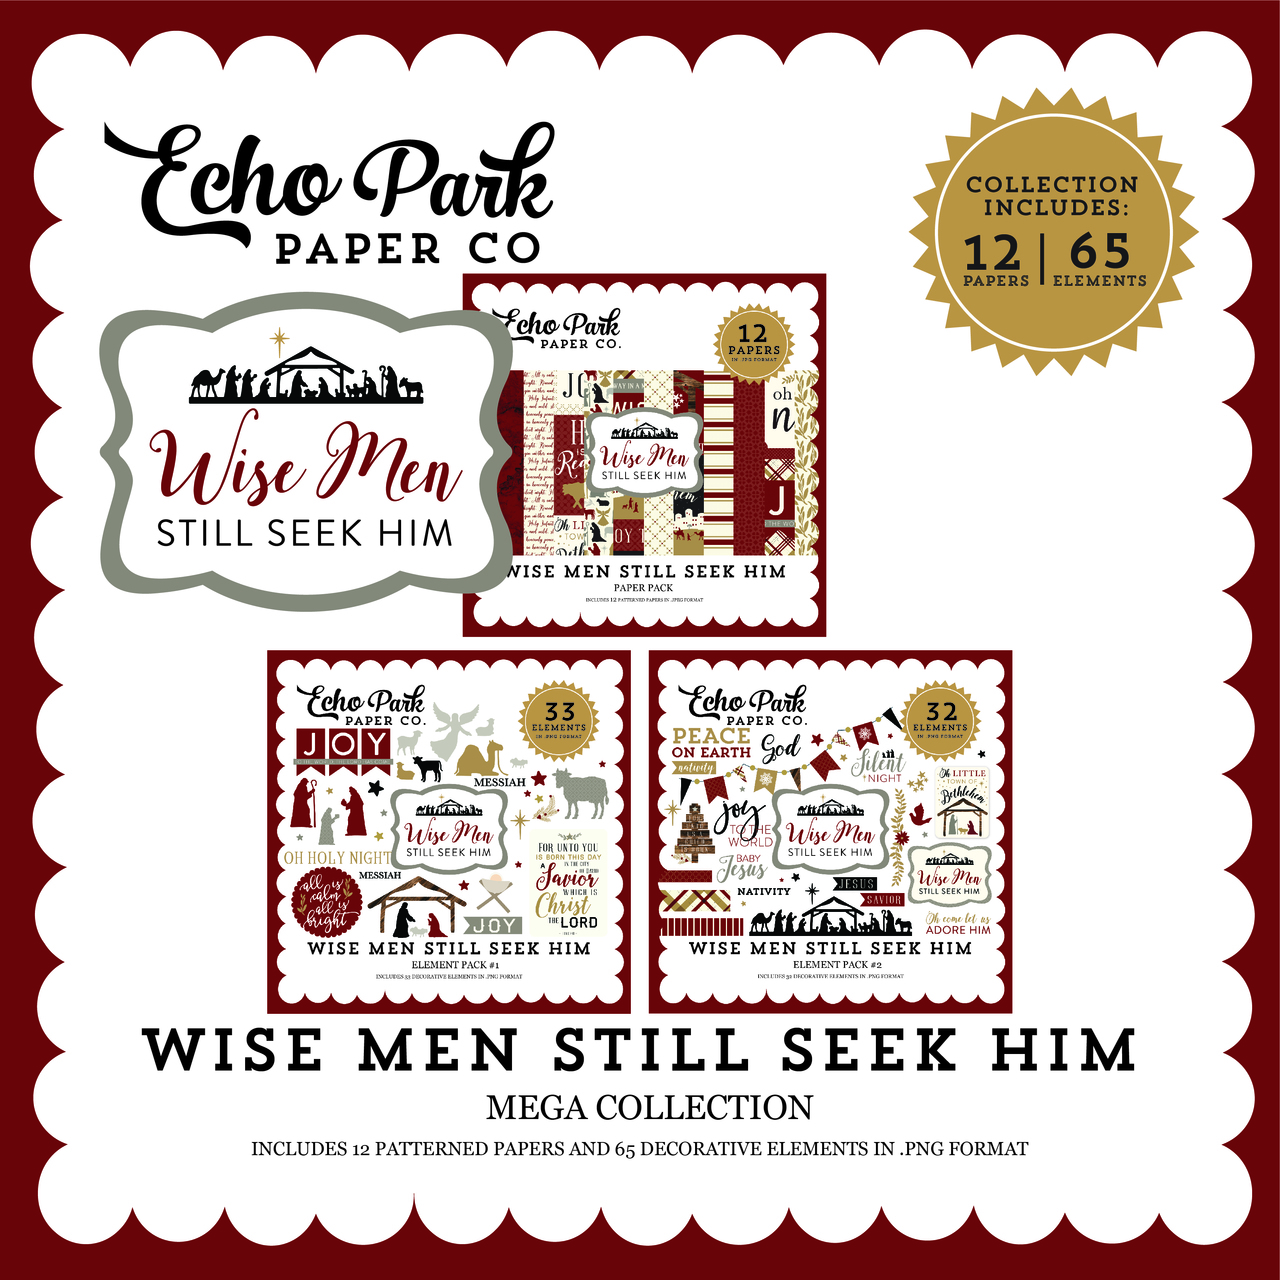 Wise Men Still Seek Him Mega Collection